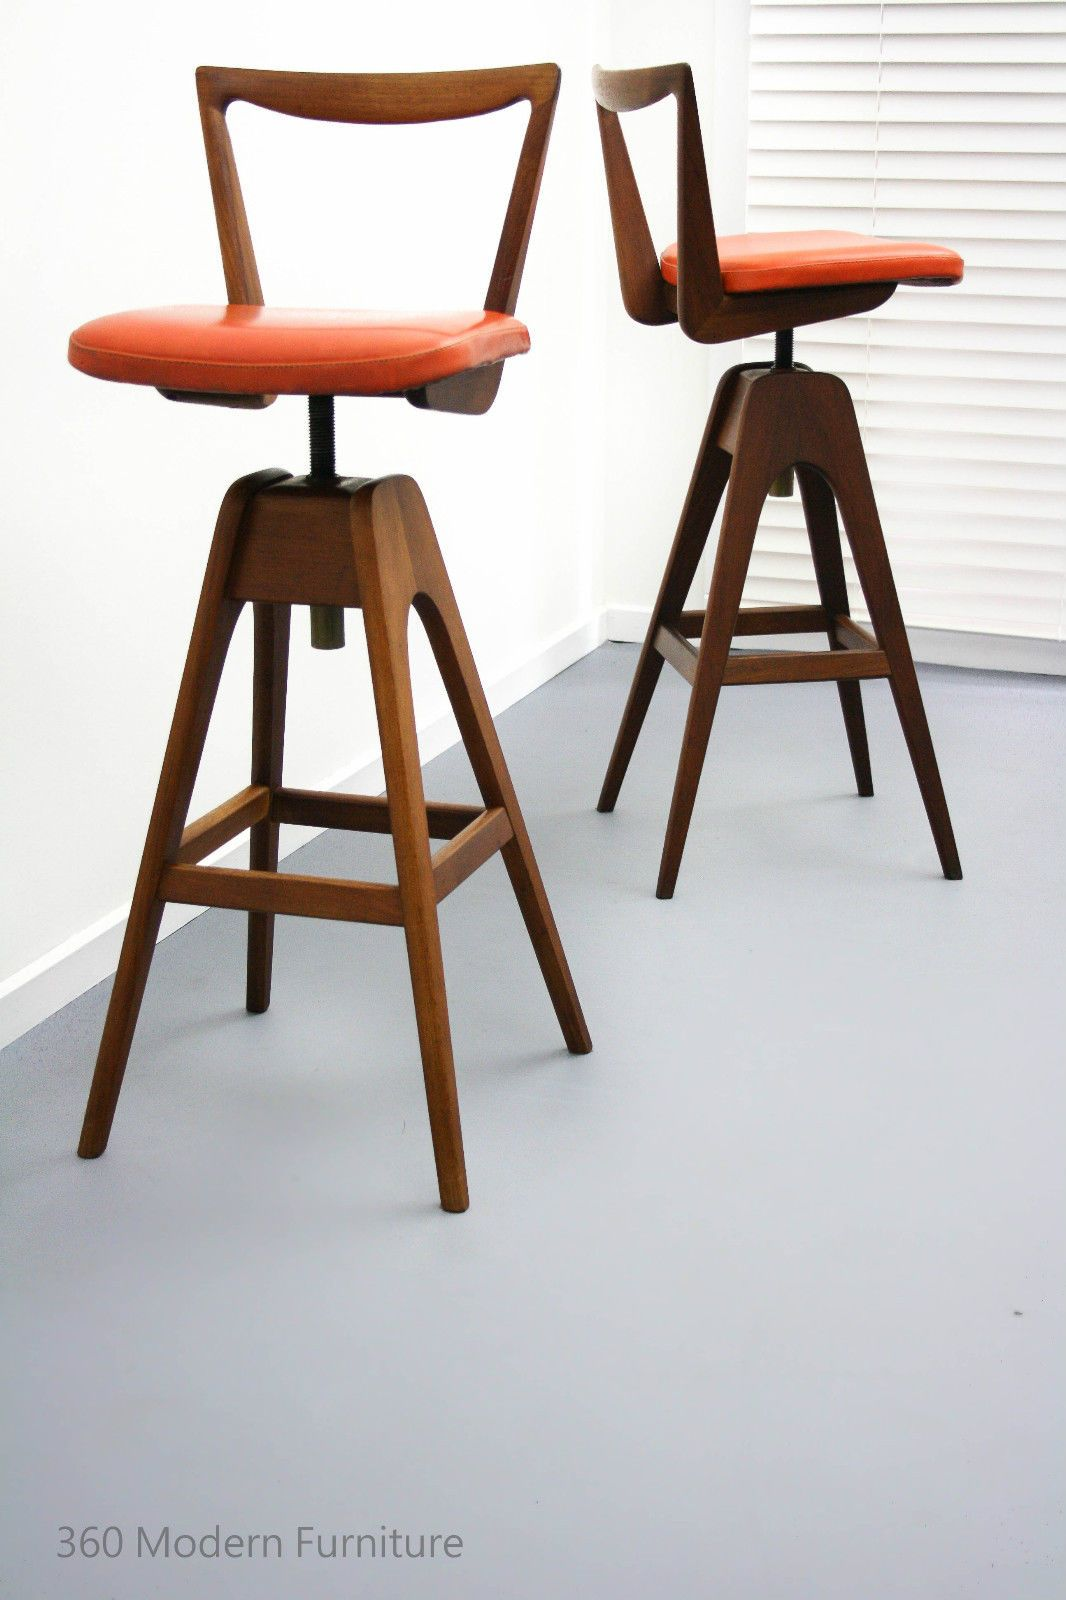 Seating Vintage Th Brown Bar Stools Brown Bar Stools Bar Stool Furniture Home Bar Accessories